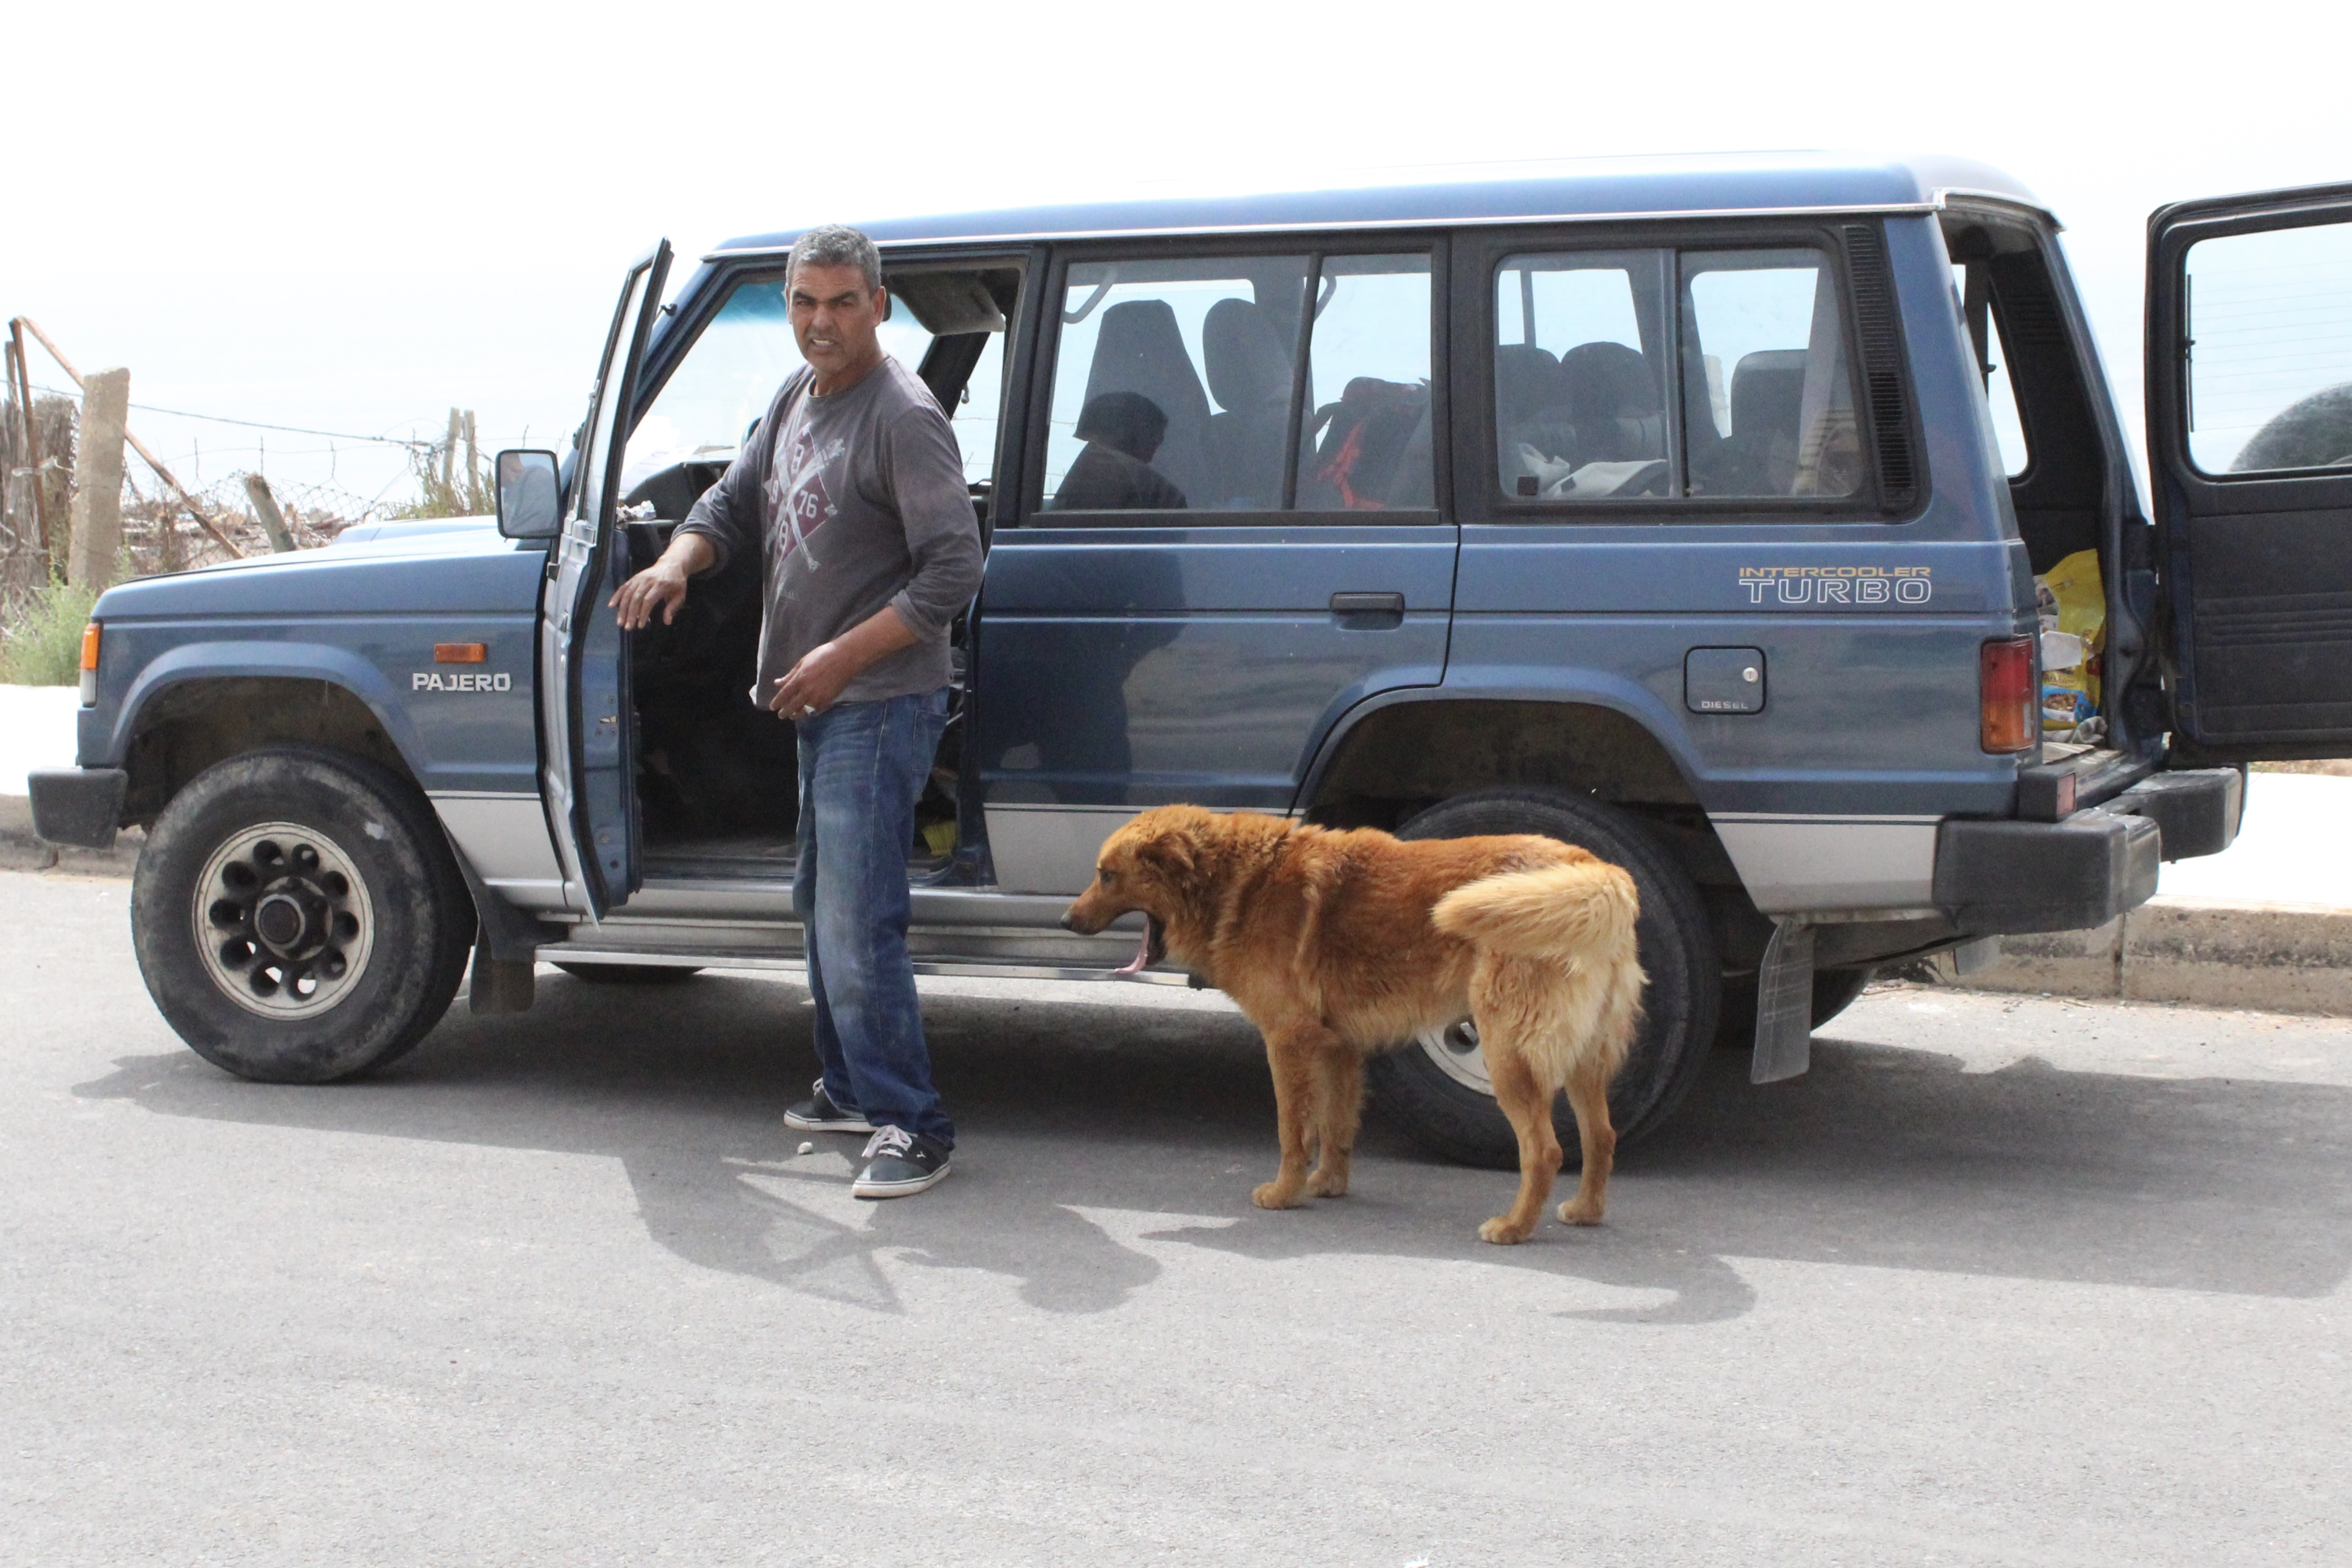 Yusef in front of his car in Morocco